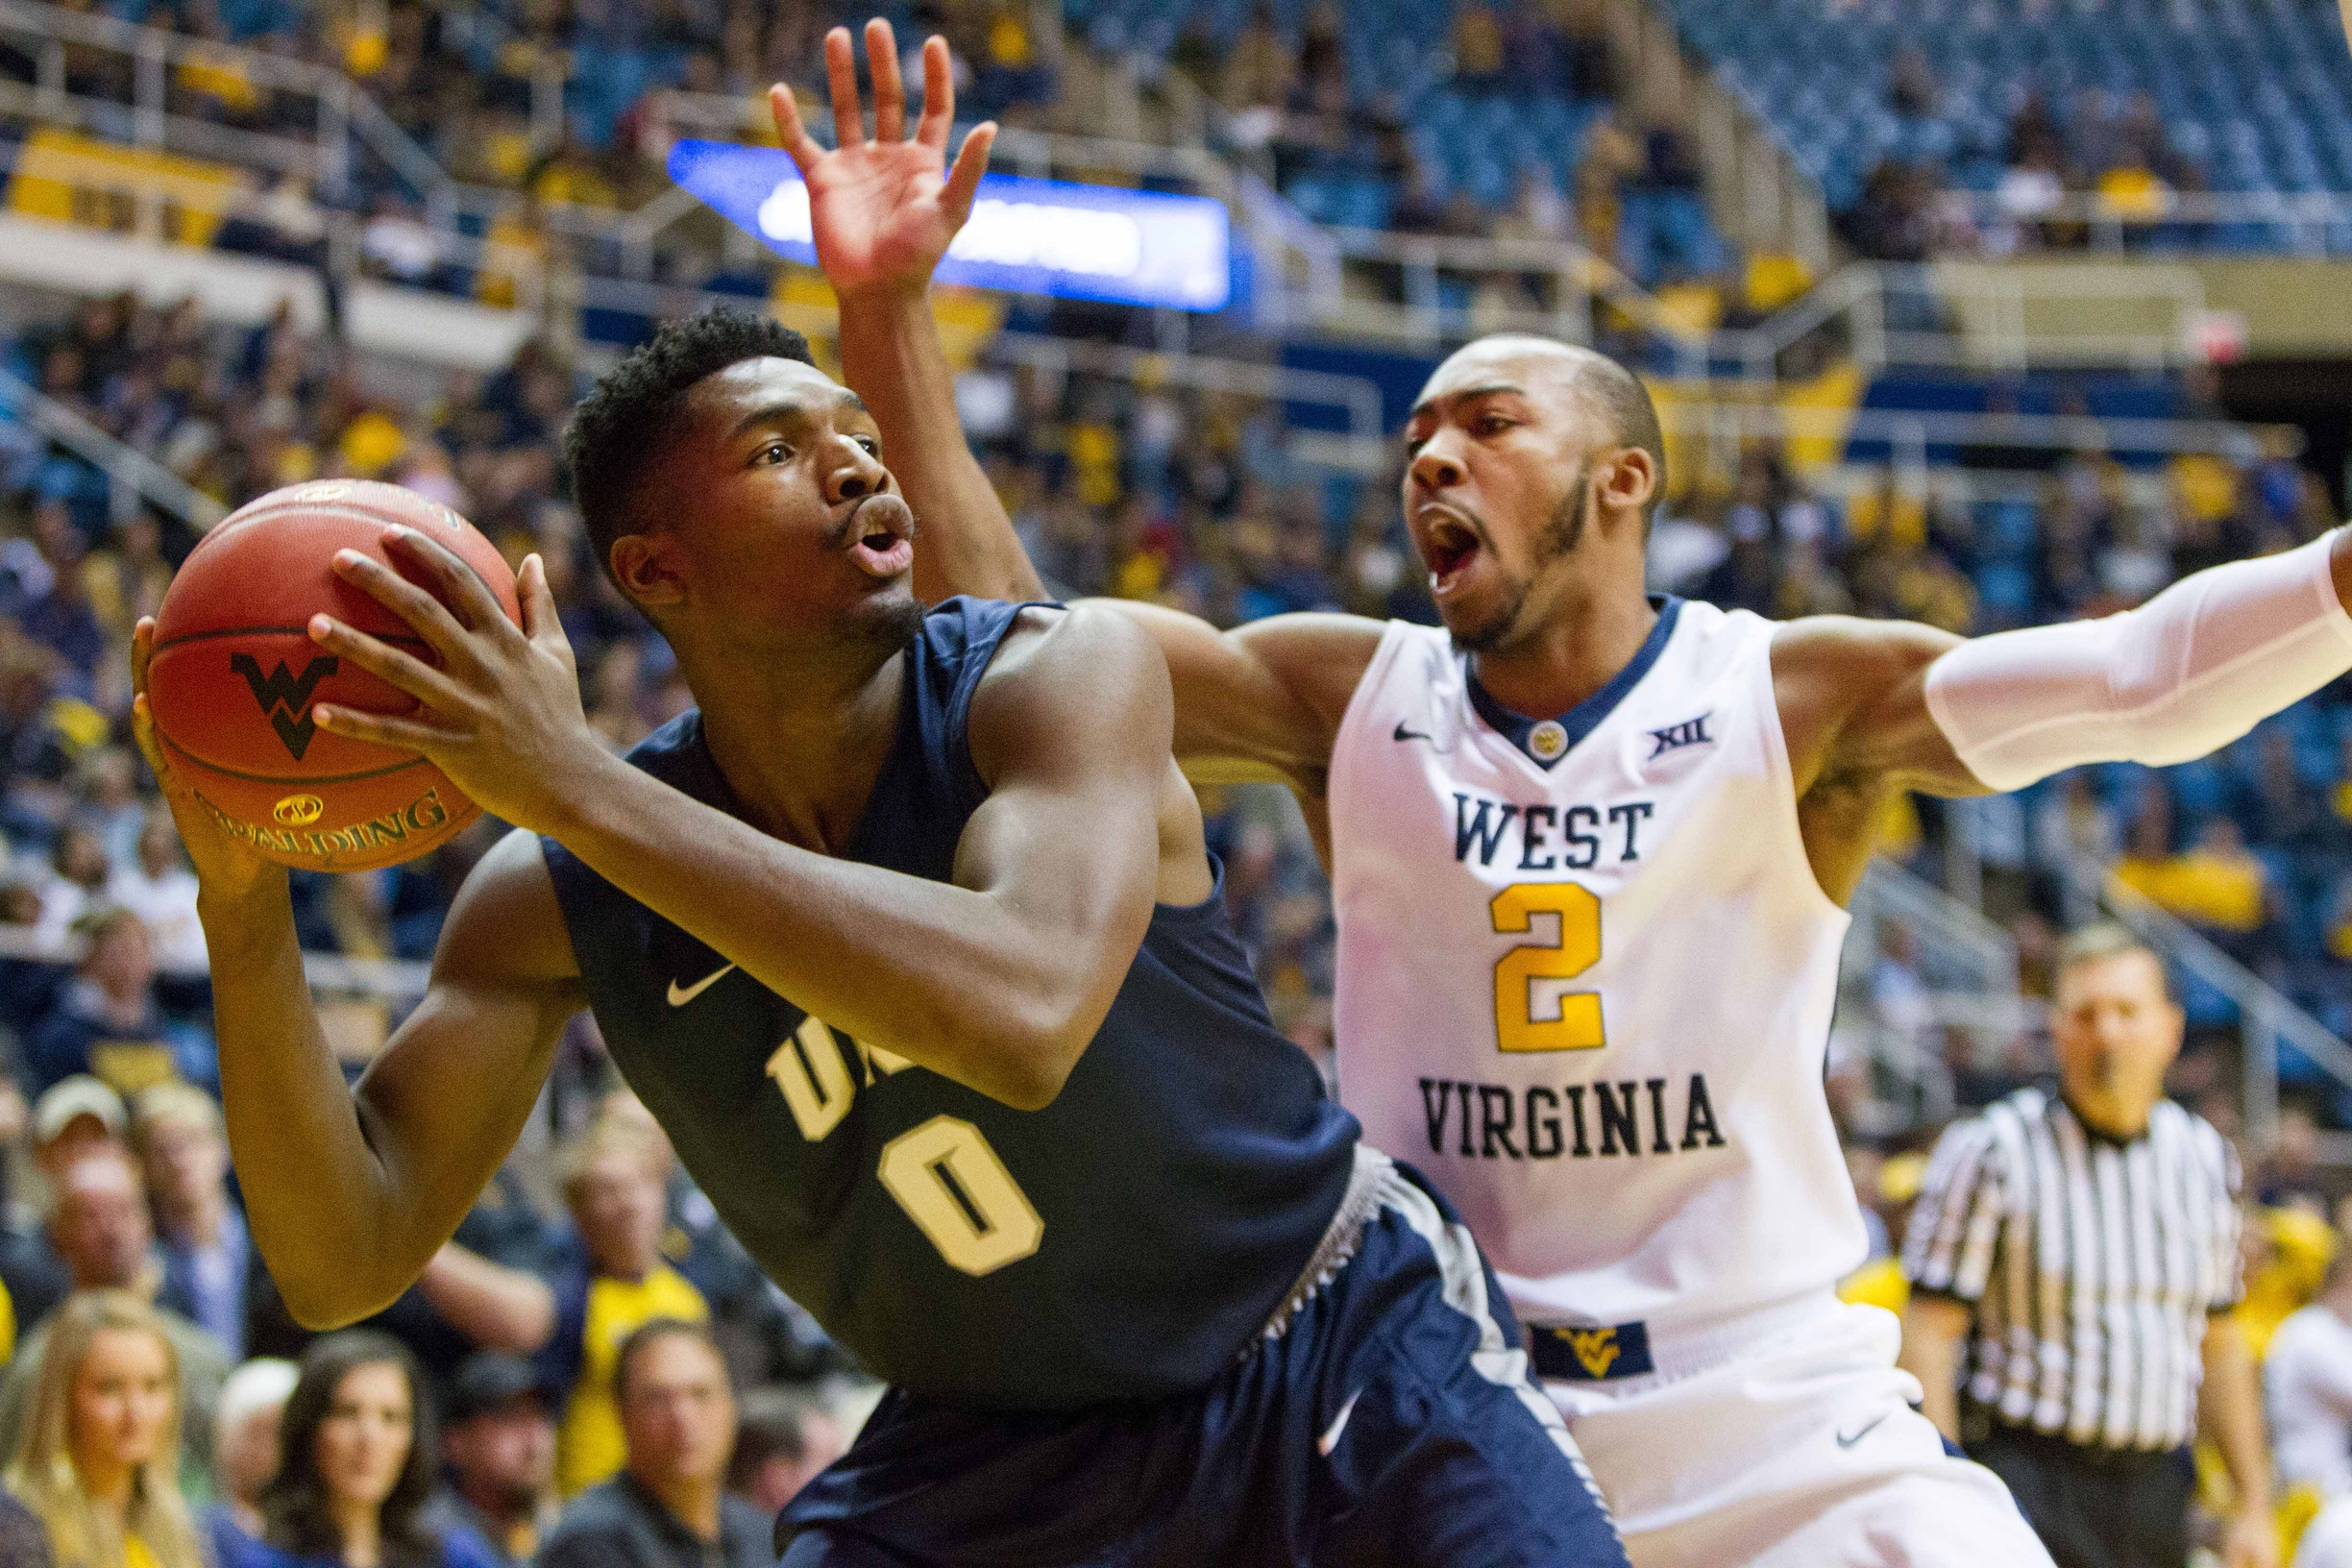 West Virginia's Carter declares for draft, won't hire agent